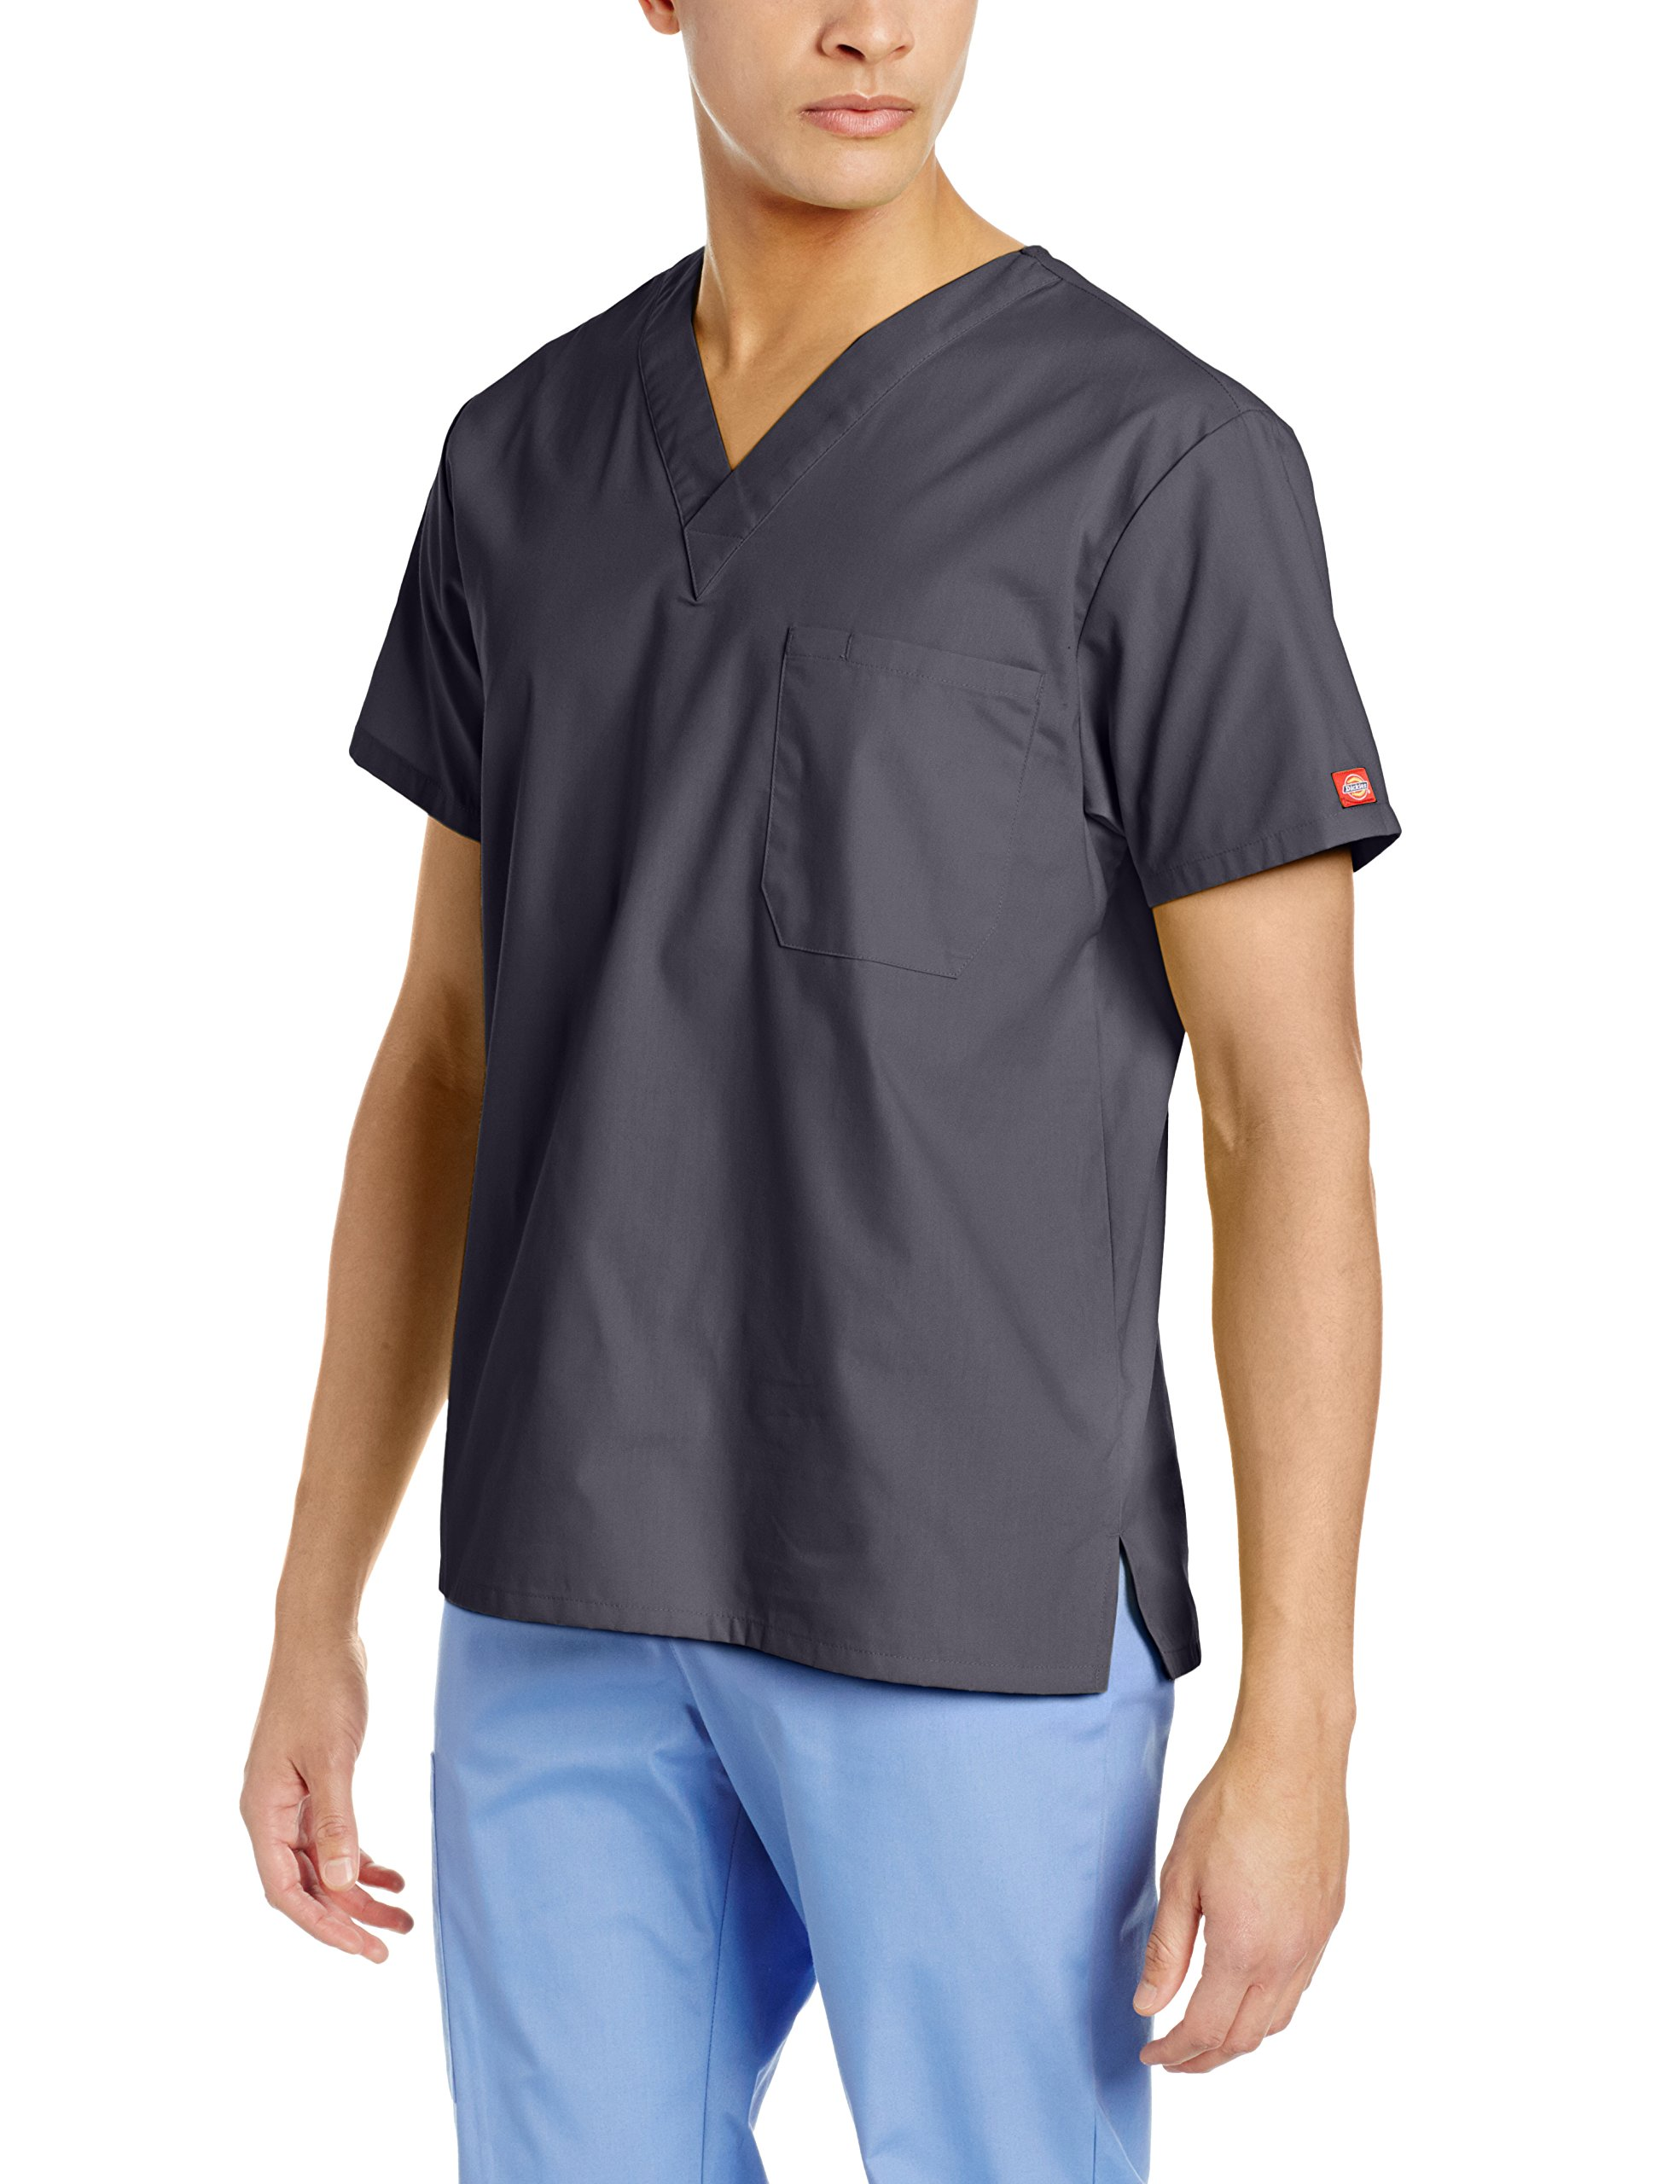 Dickies Unisex V-Neck Scrub Top, Pewter, Large